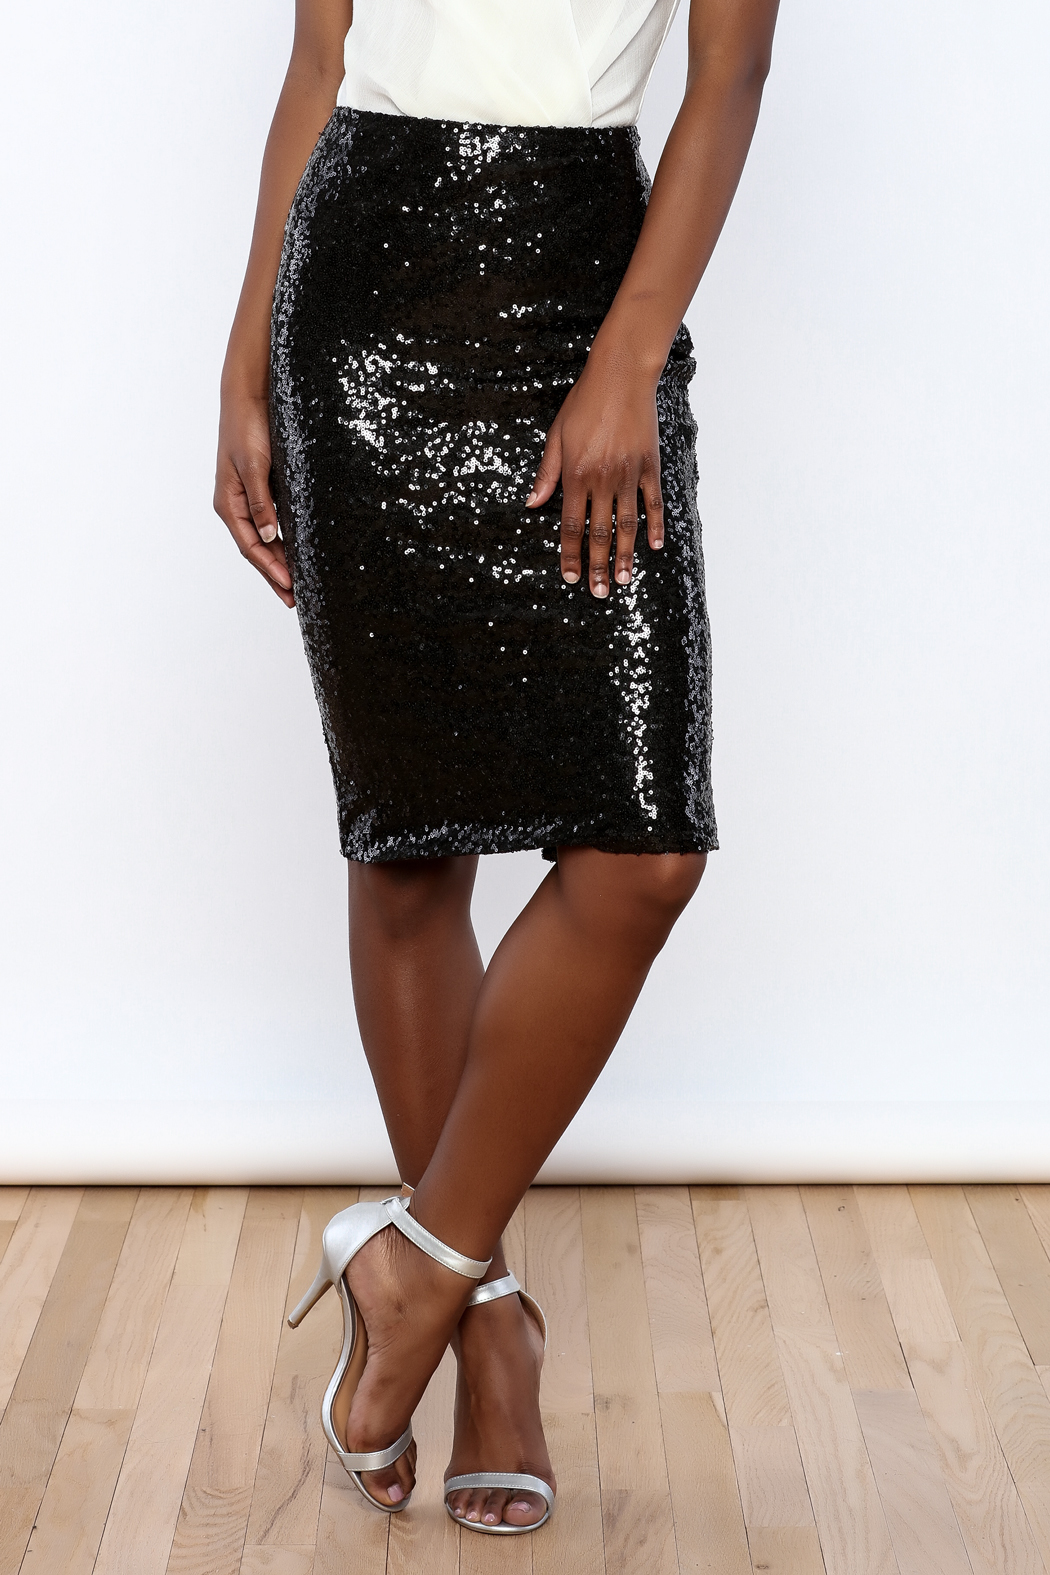 Alythea Black Sequin Pencil Skirt from New York City by ...